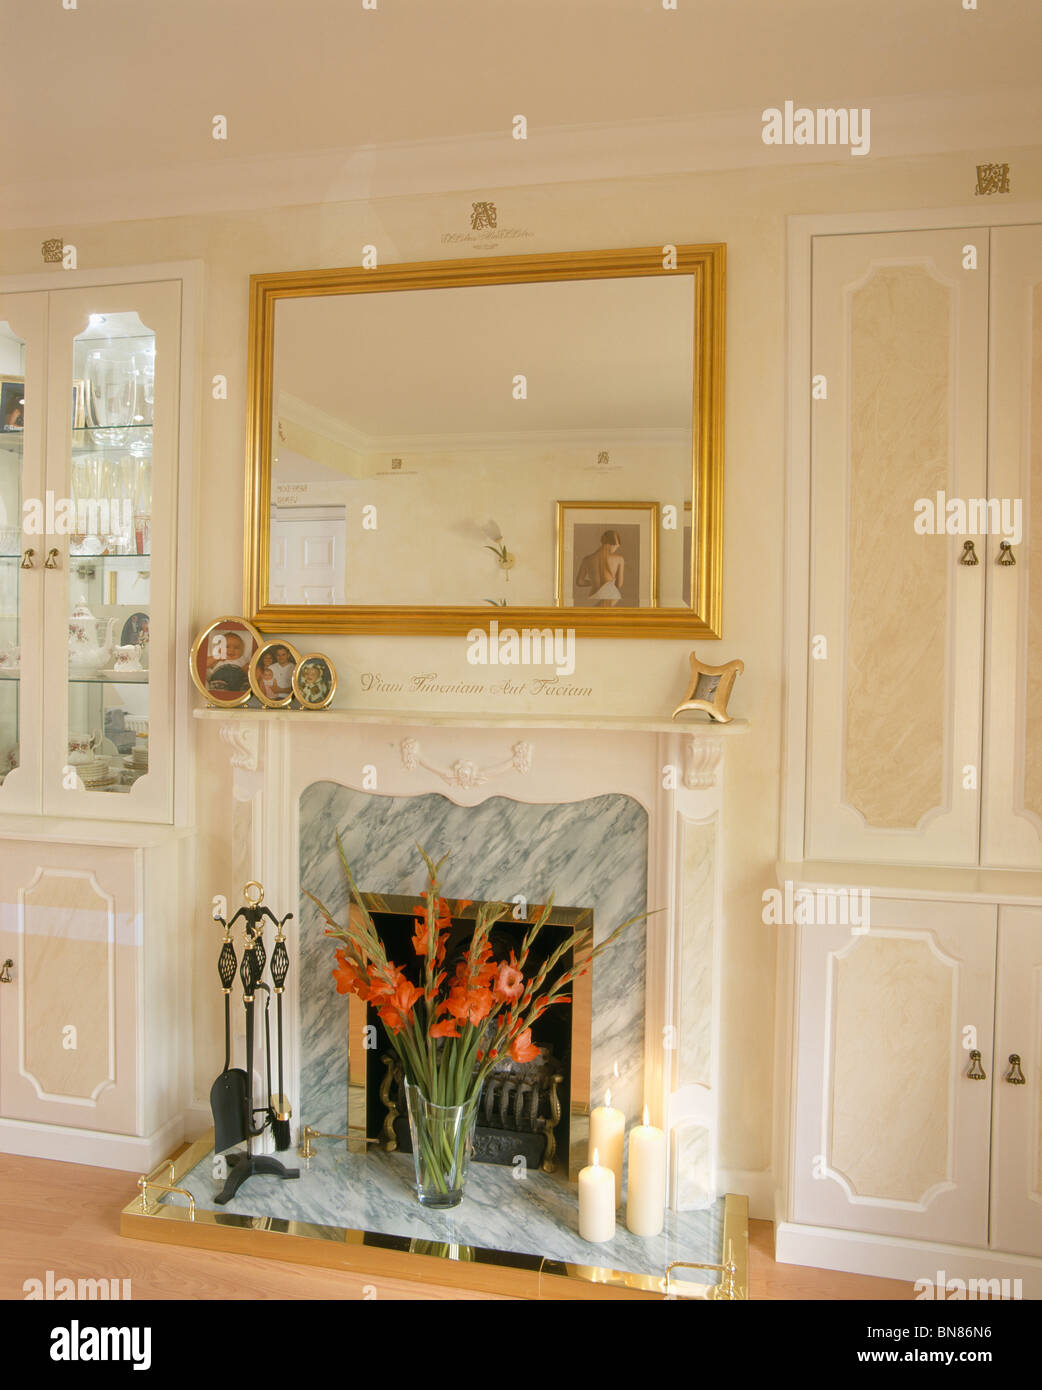 Mirror Above Fireplace In Neutral Stock Photos & Mirror Above ...